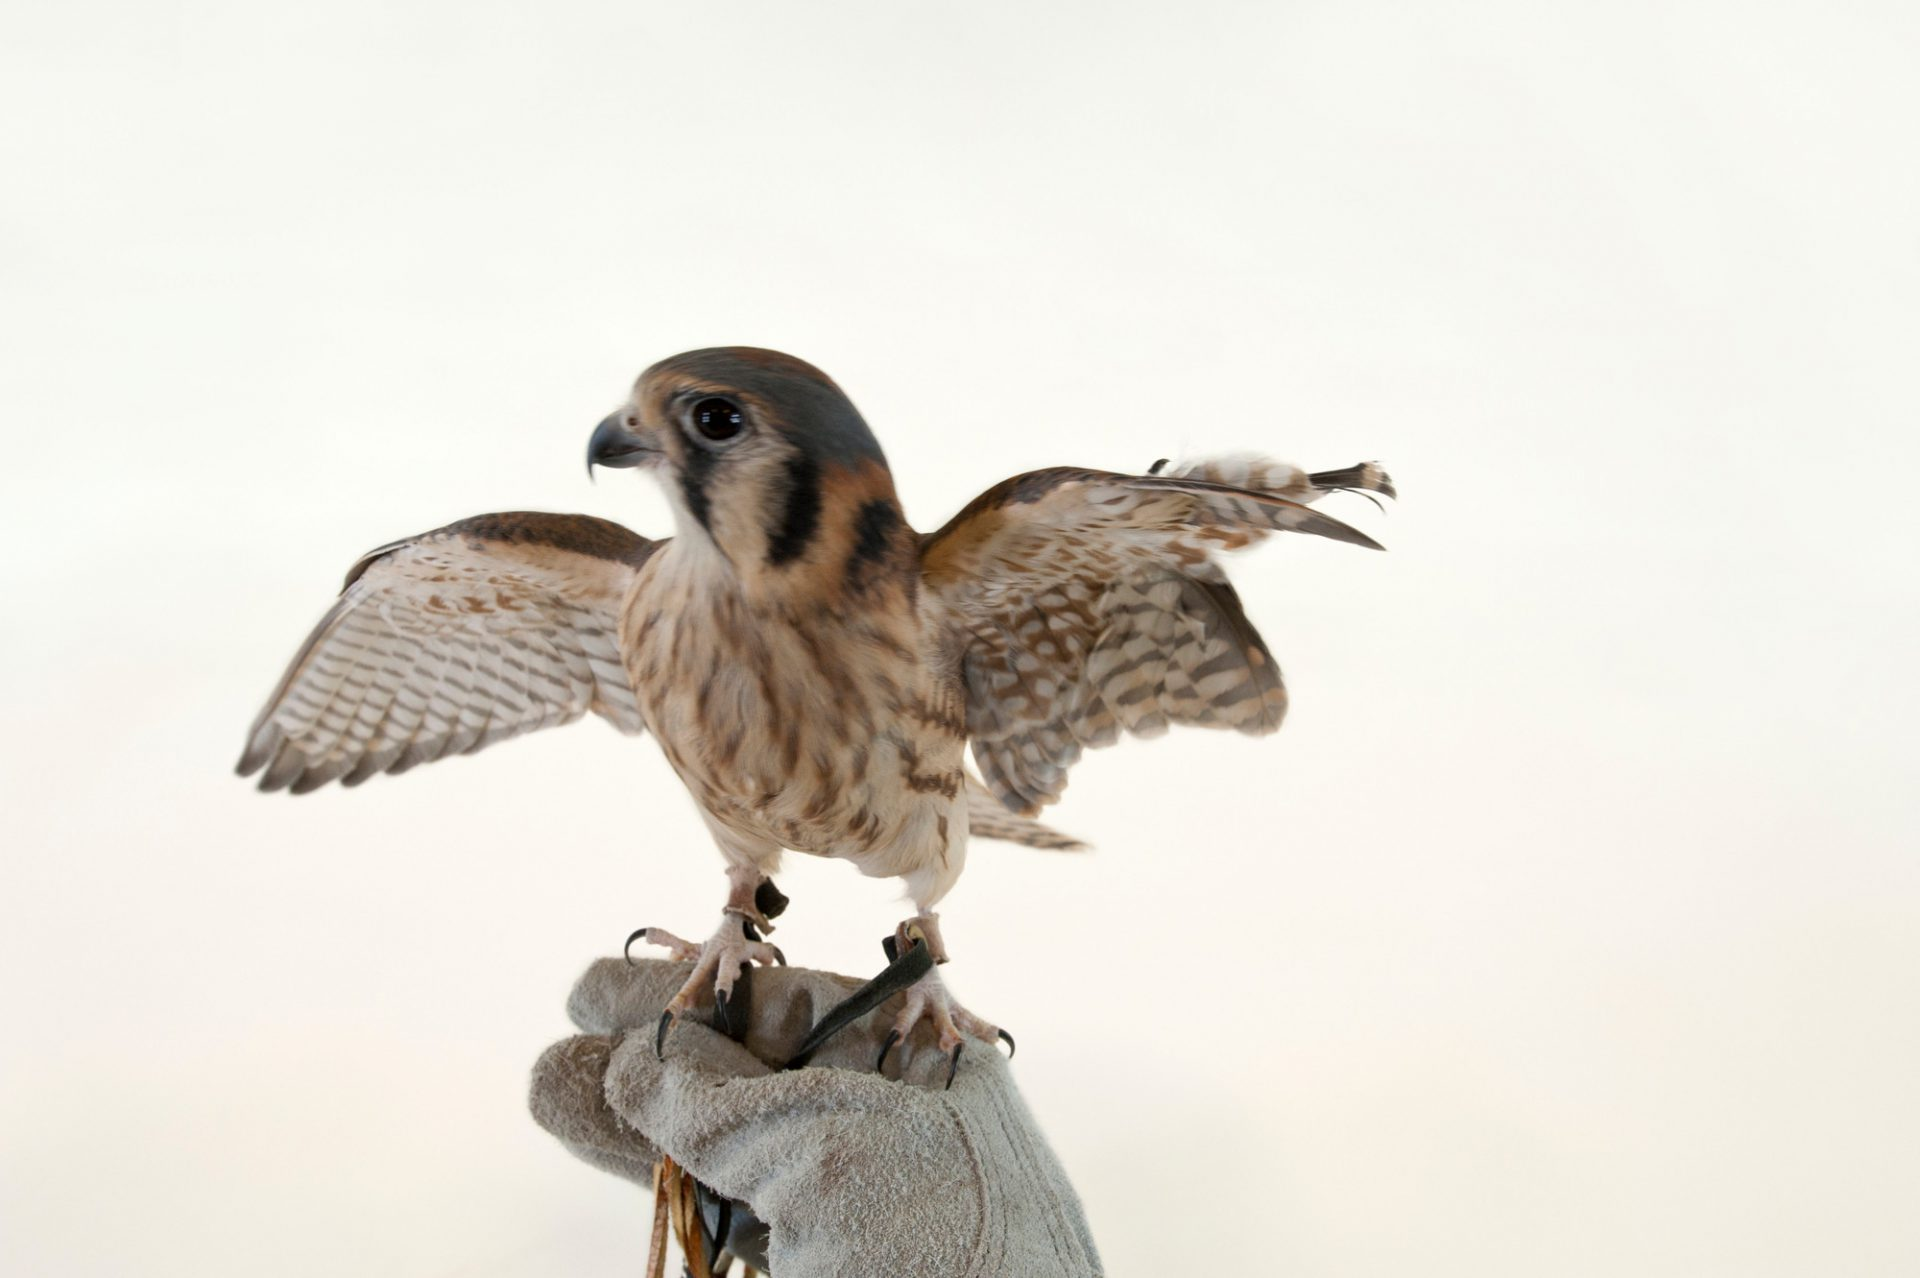 An American kestrel (Falco sparverius) at the Lincoln Children's Zoo.